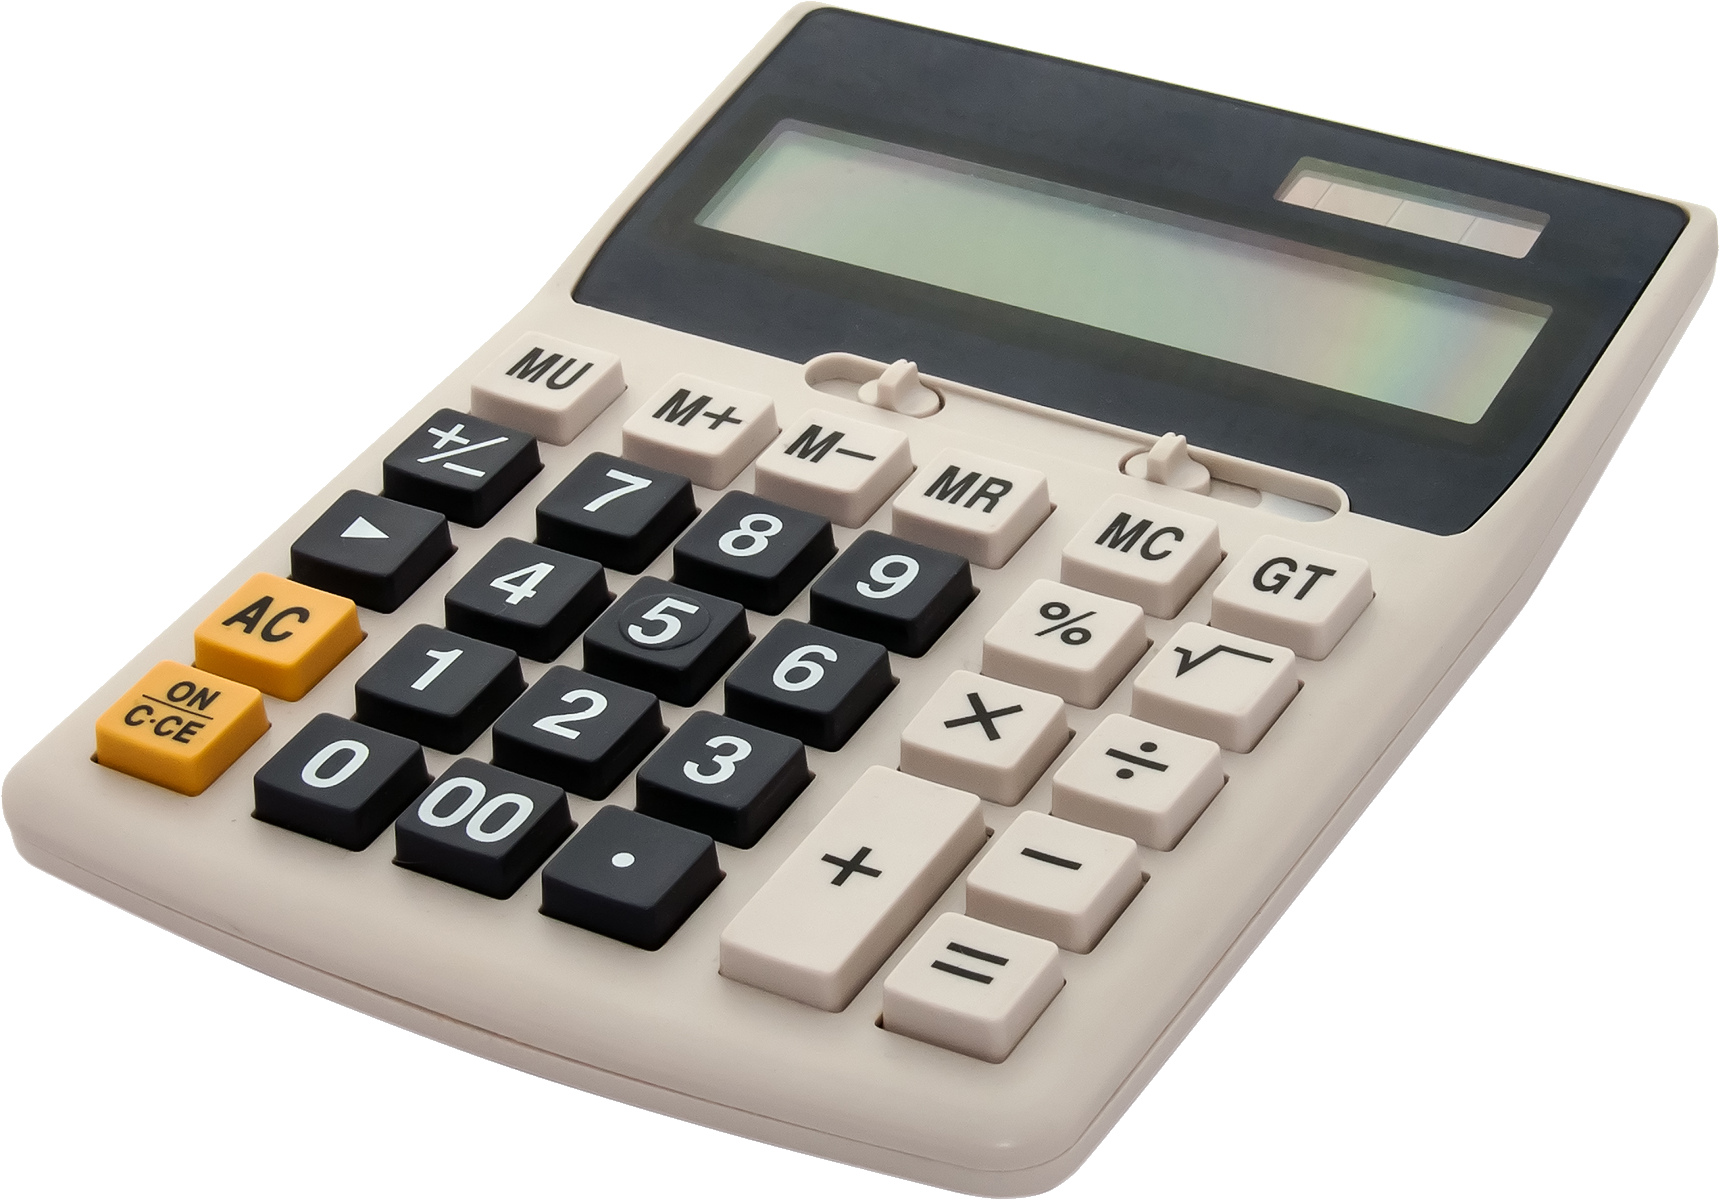 Calculator PNG Image - Calculator PNG